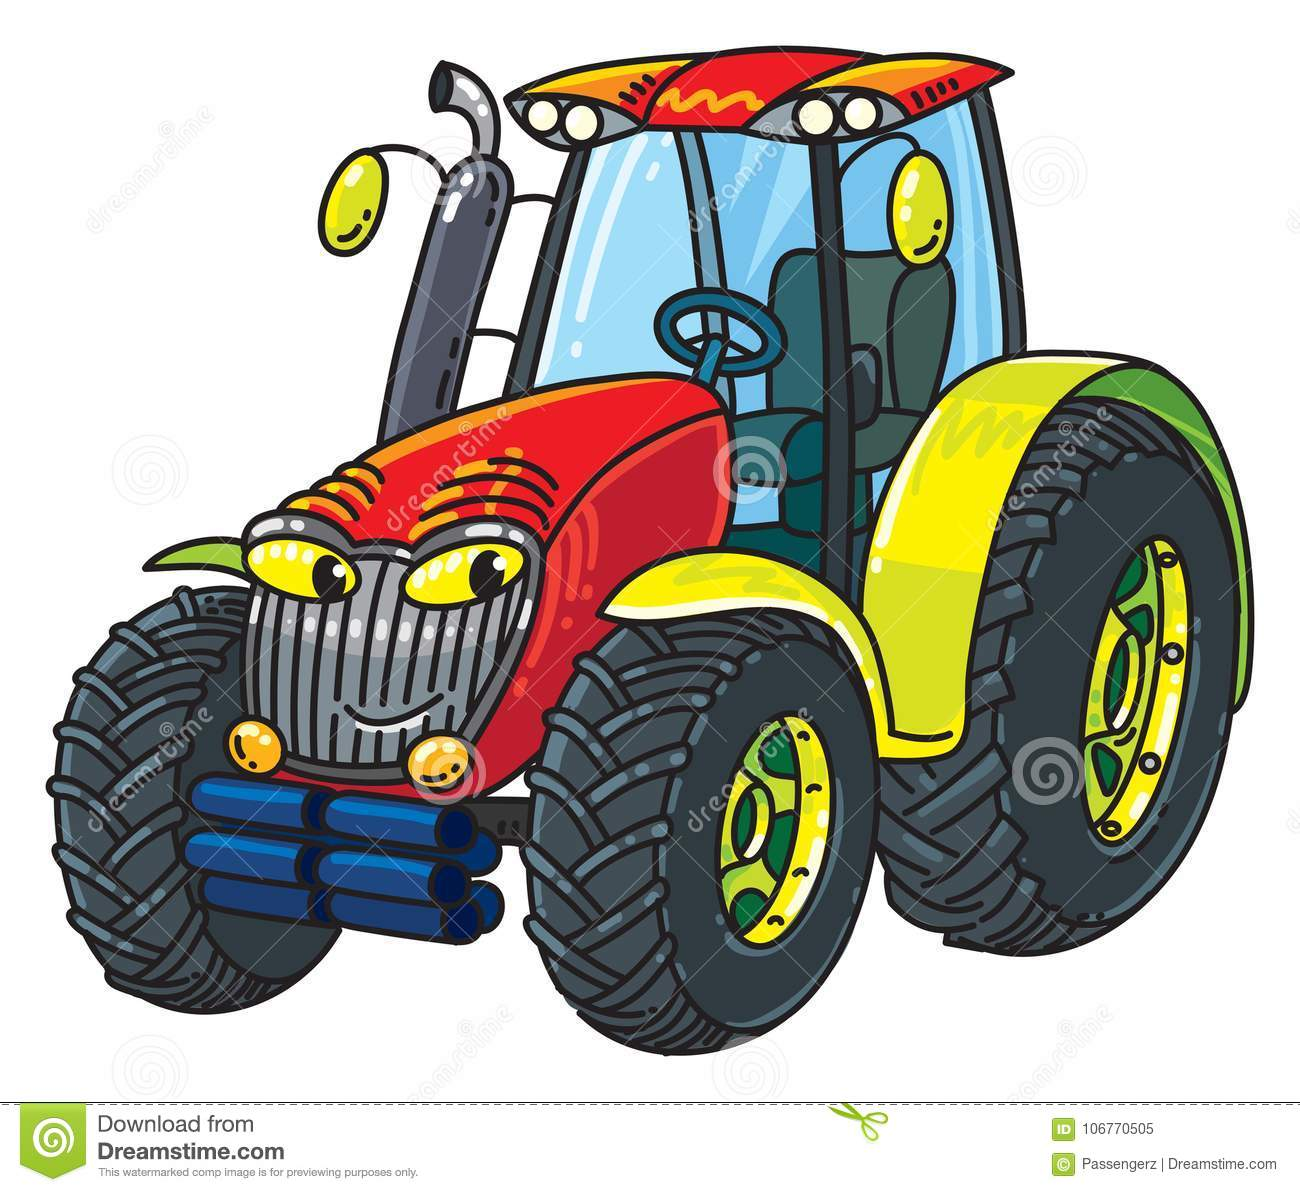 Small Tractor Cartoon : Funny small tractor with eyes stock vector illustration